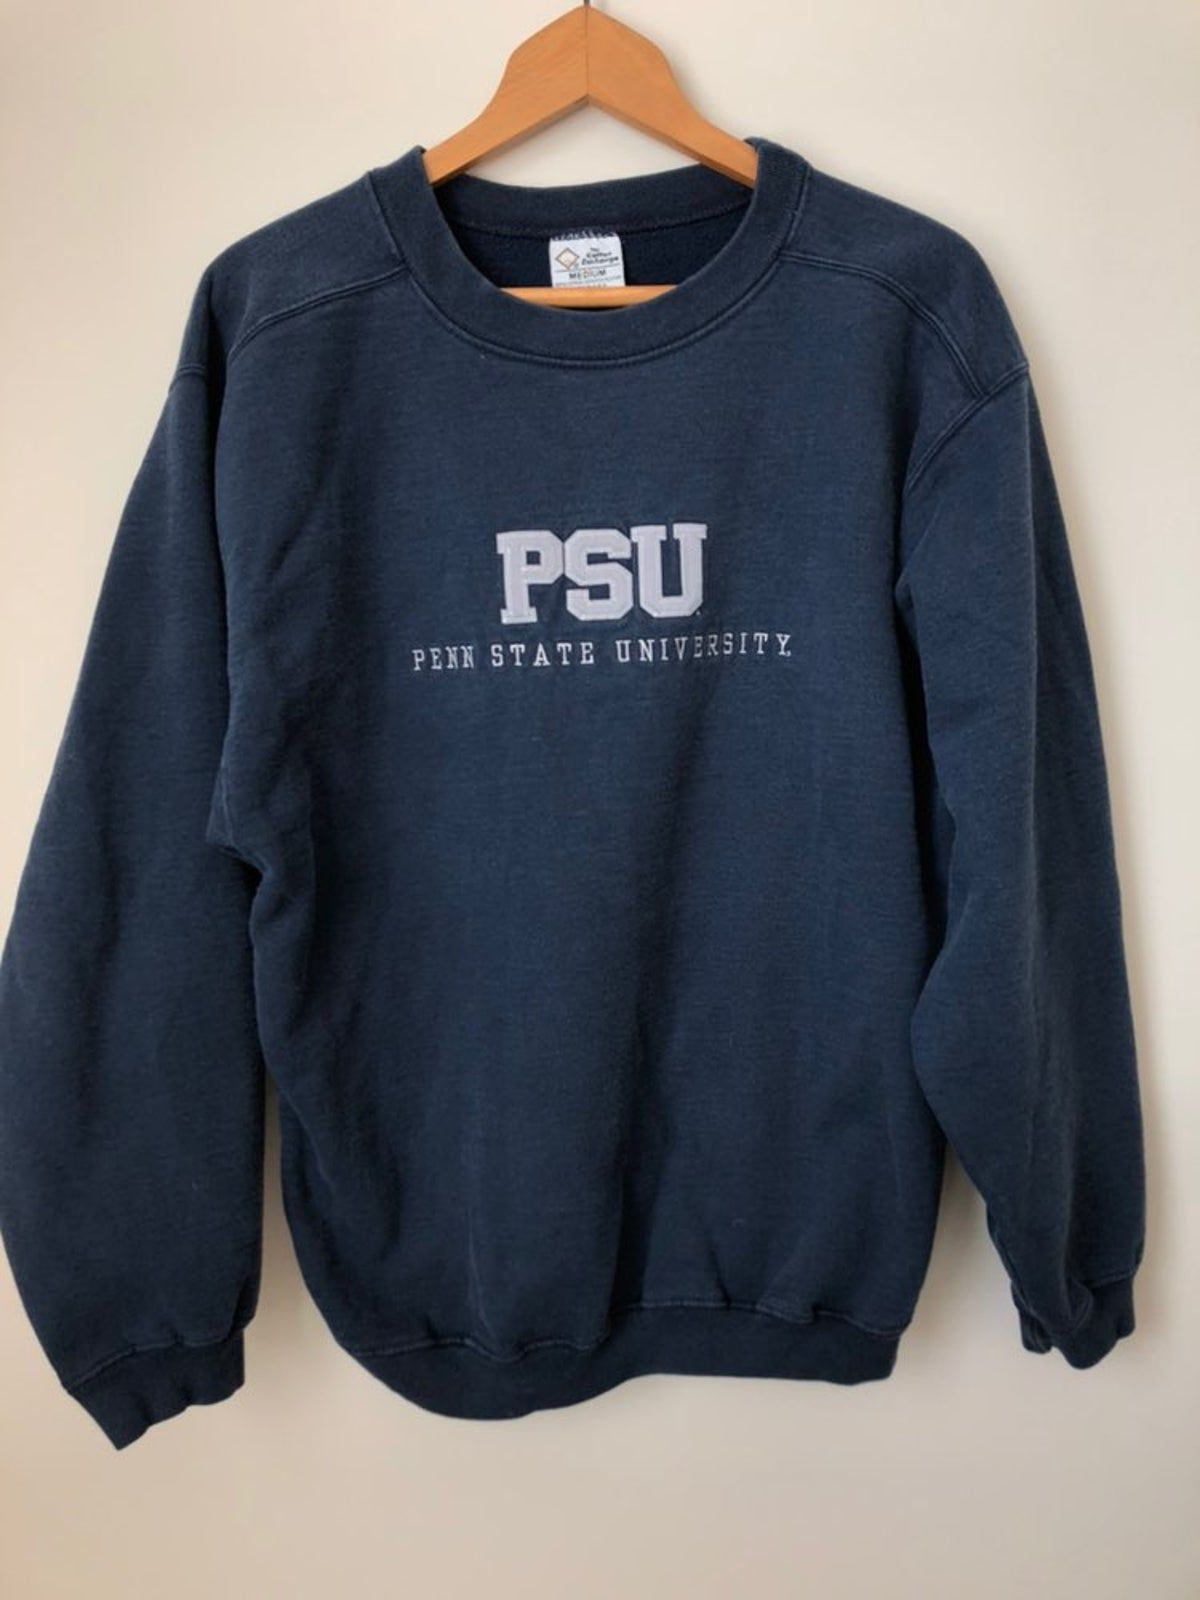 Vintage Penn State Nittany Lions 90s Vintage College Sweatshirts College Shirt Outfit College Sweatshirt Outfit [ 1600 x 1200 Pixel ]